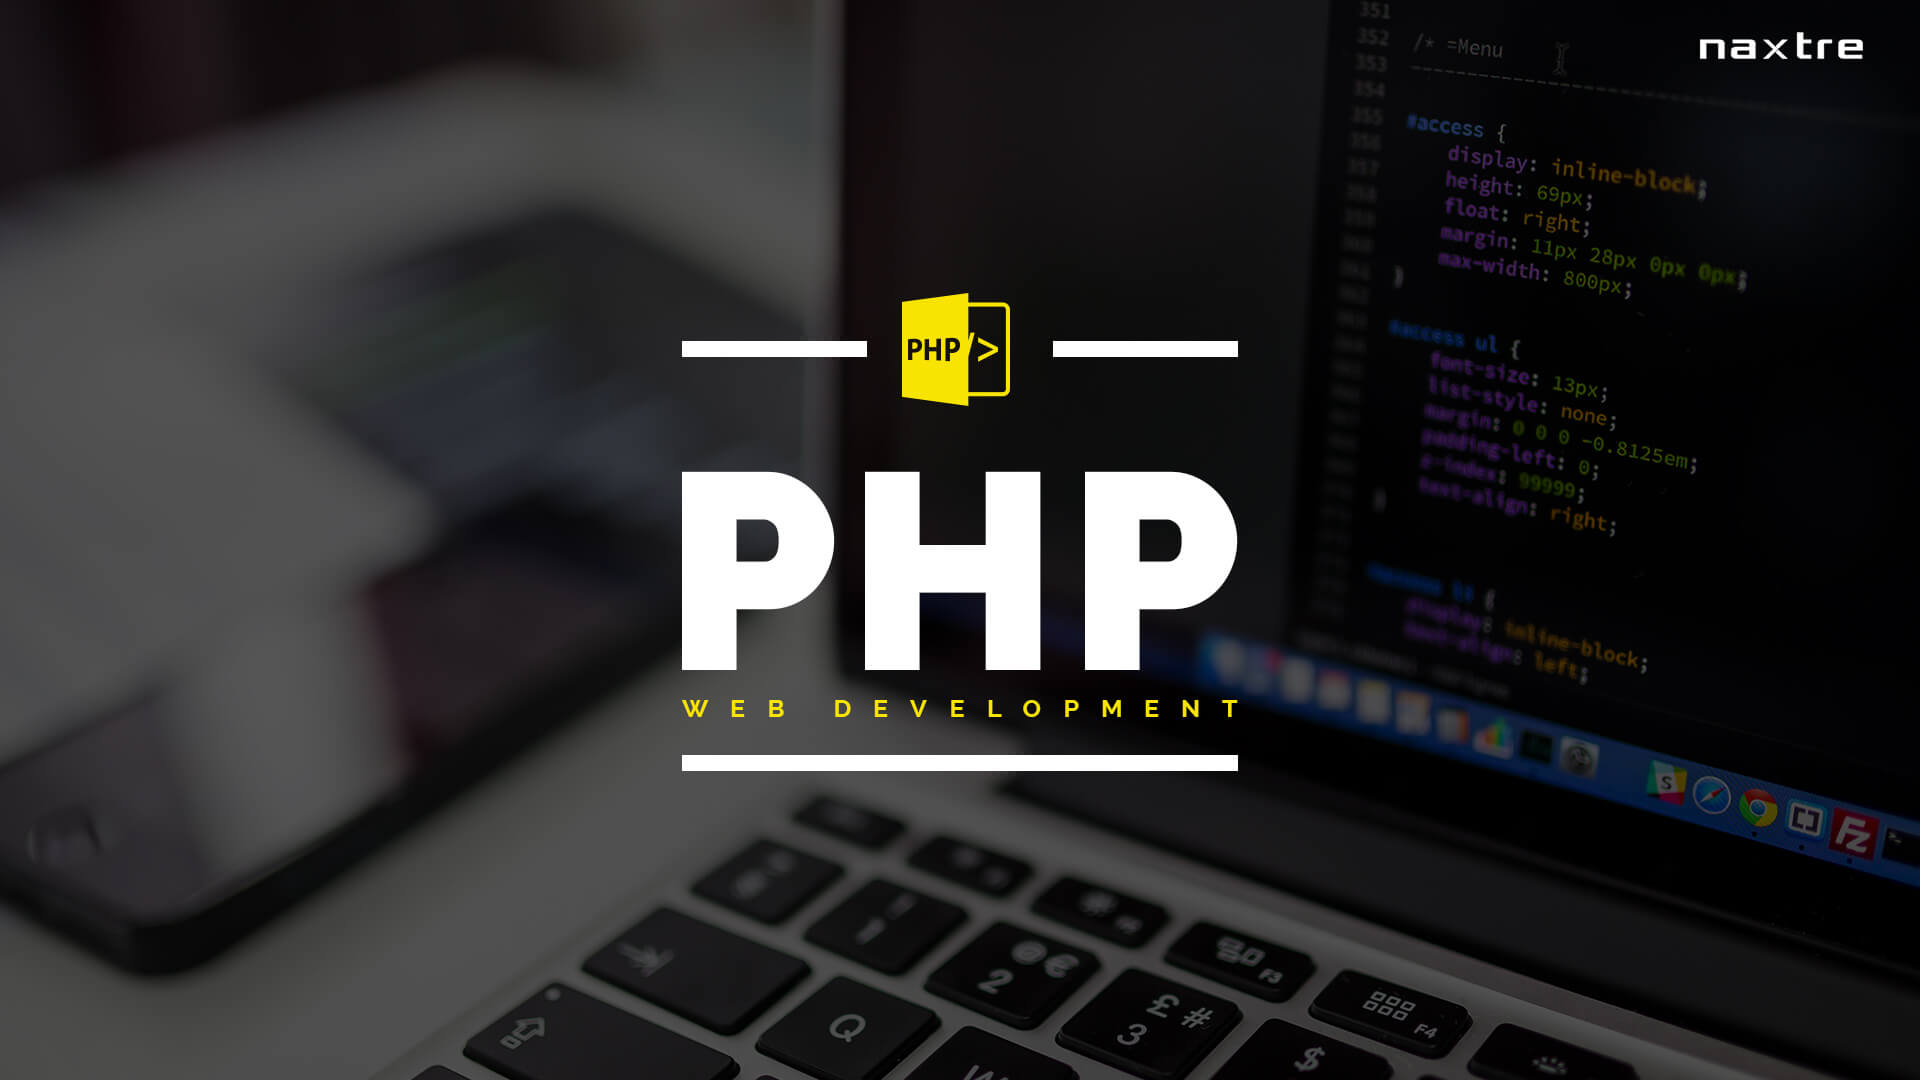 Php Wallpaper Hd Php Programming Learn For Life Nigeria